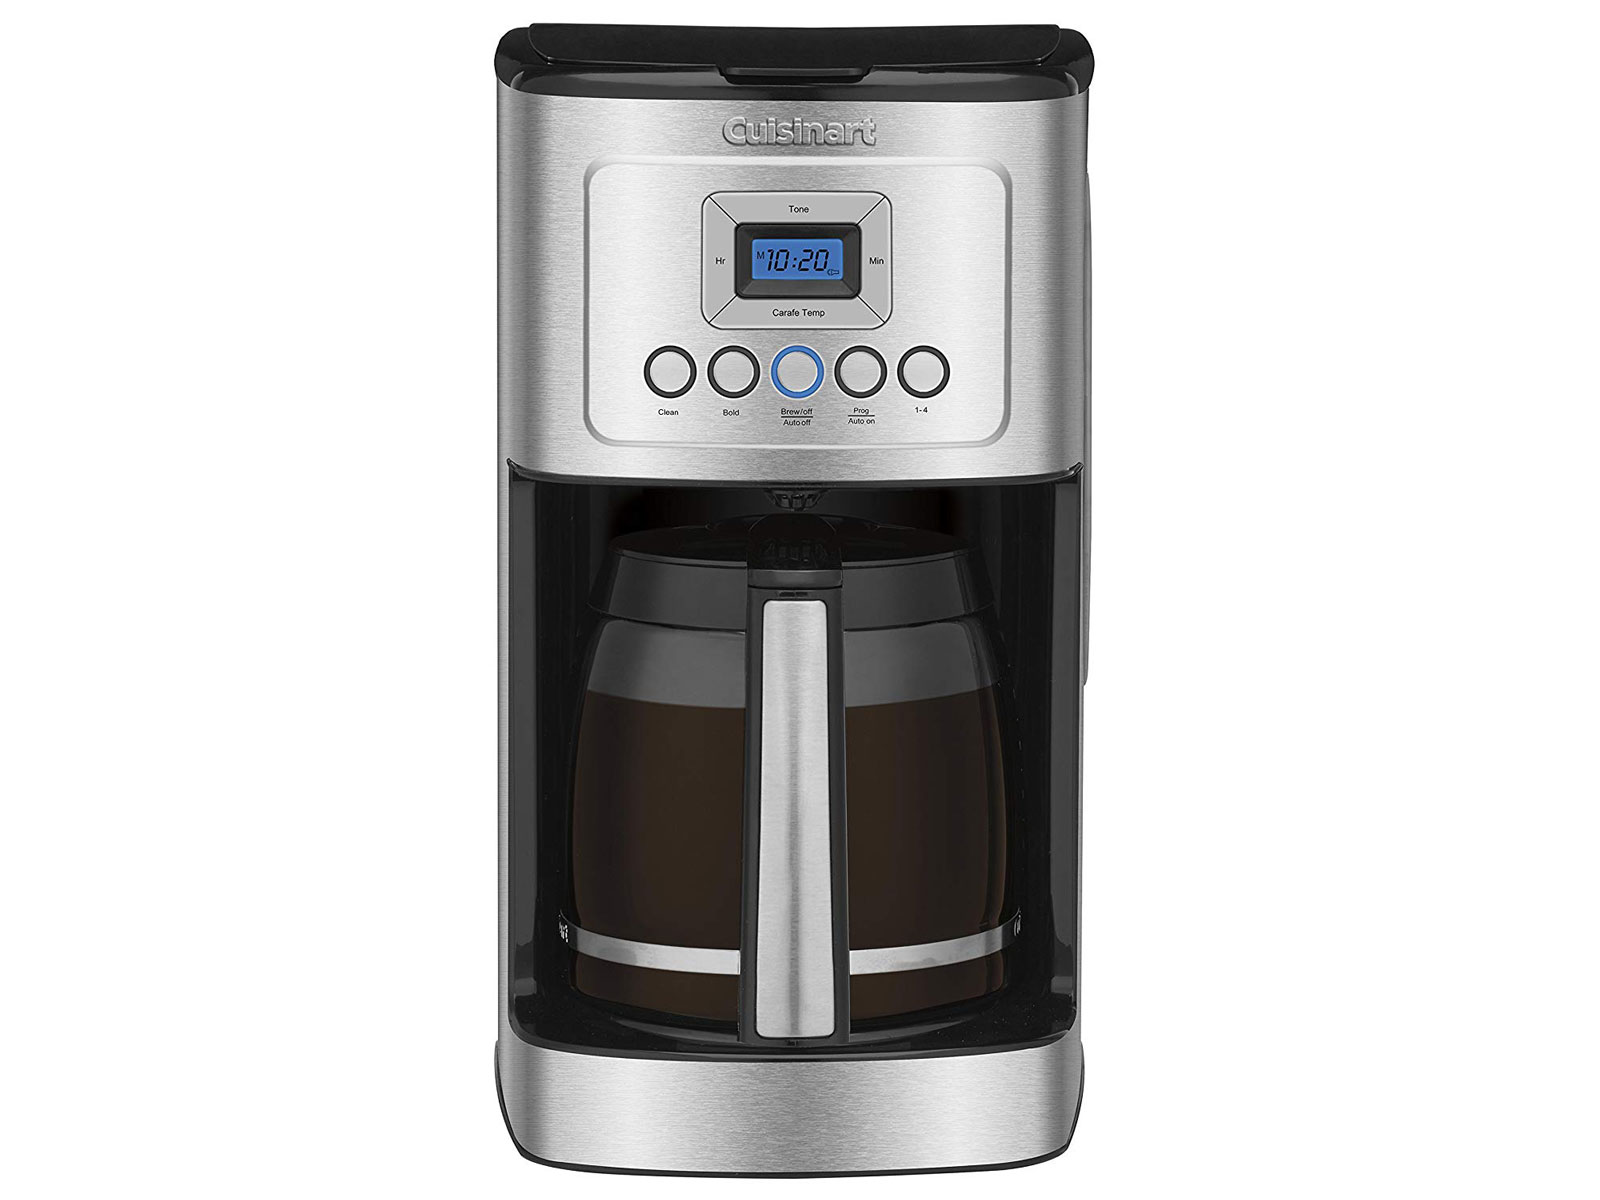 best-coffee-makers-cuisinart-FT-BLOG0819.jpg